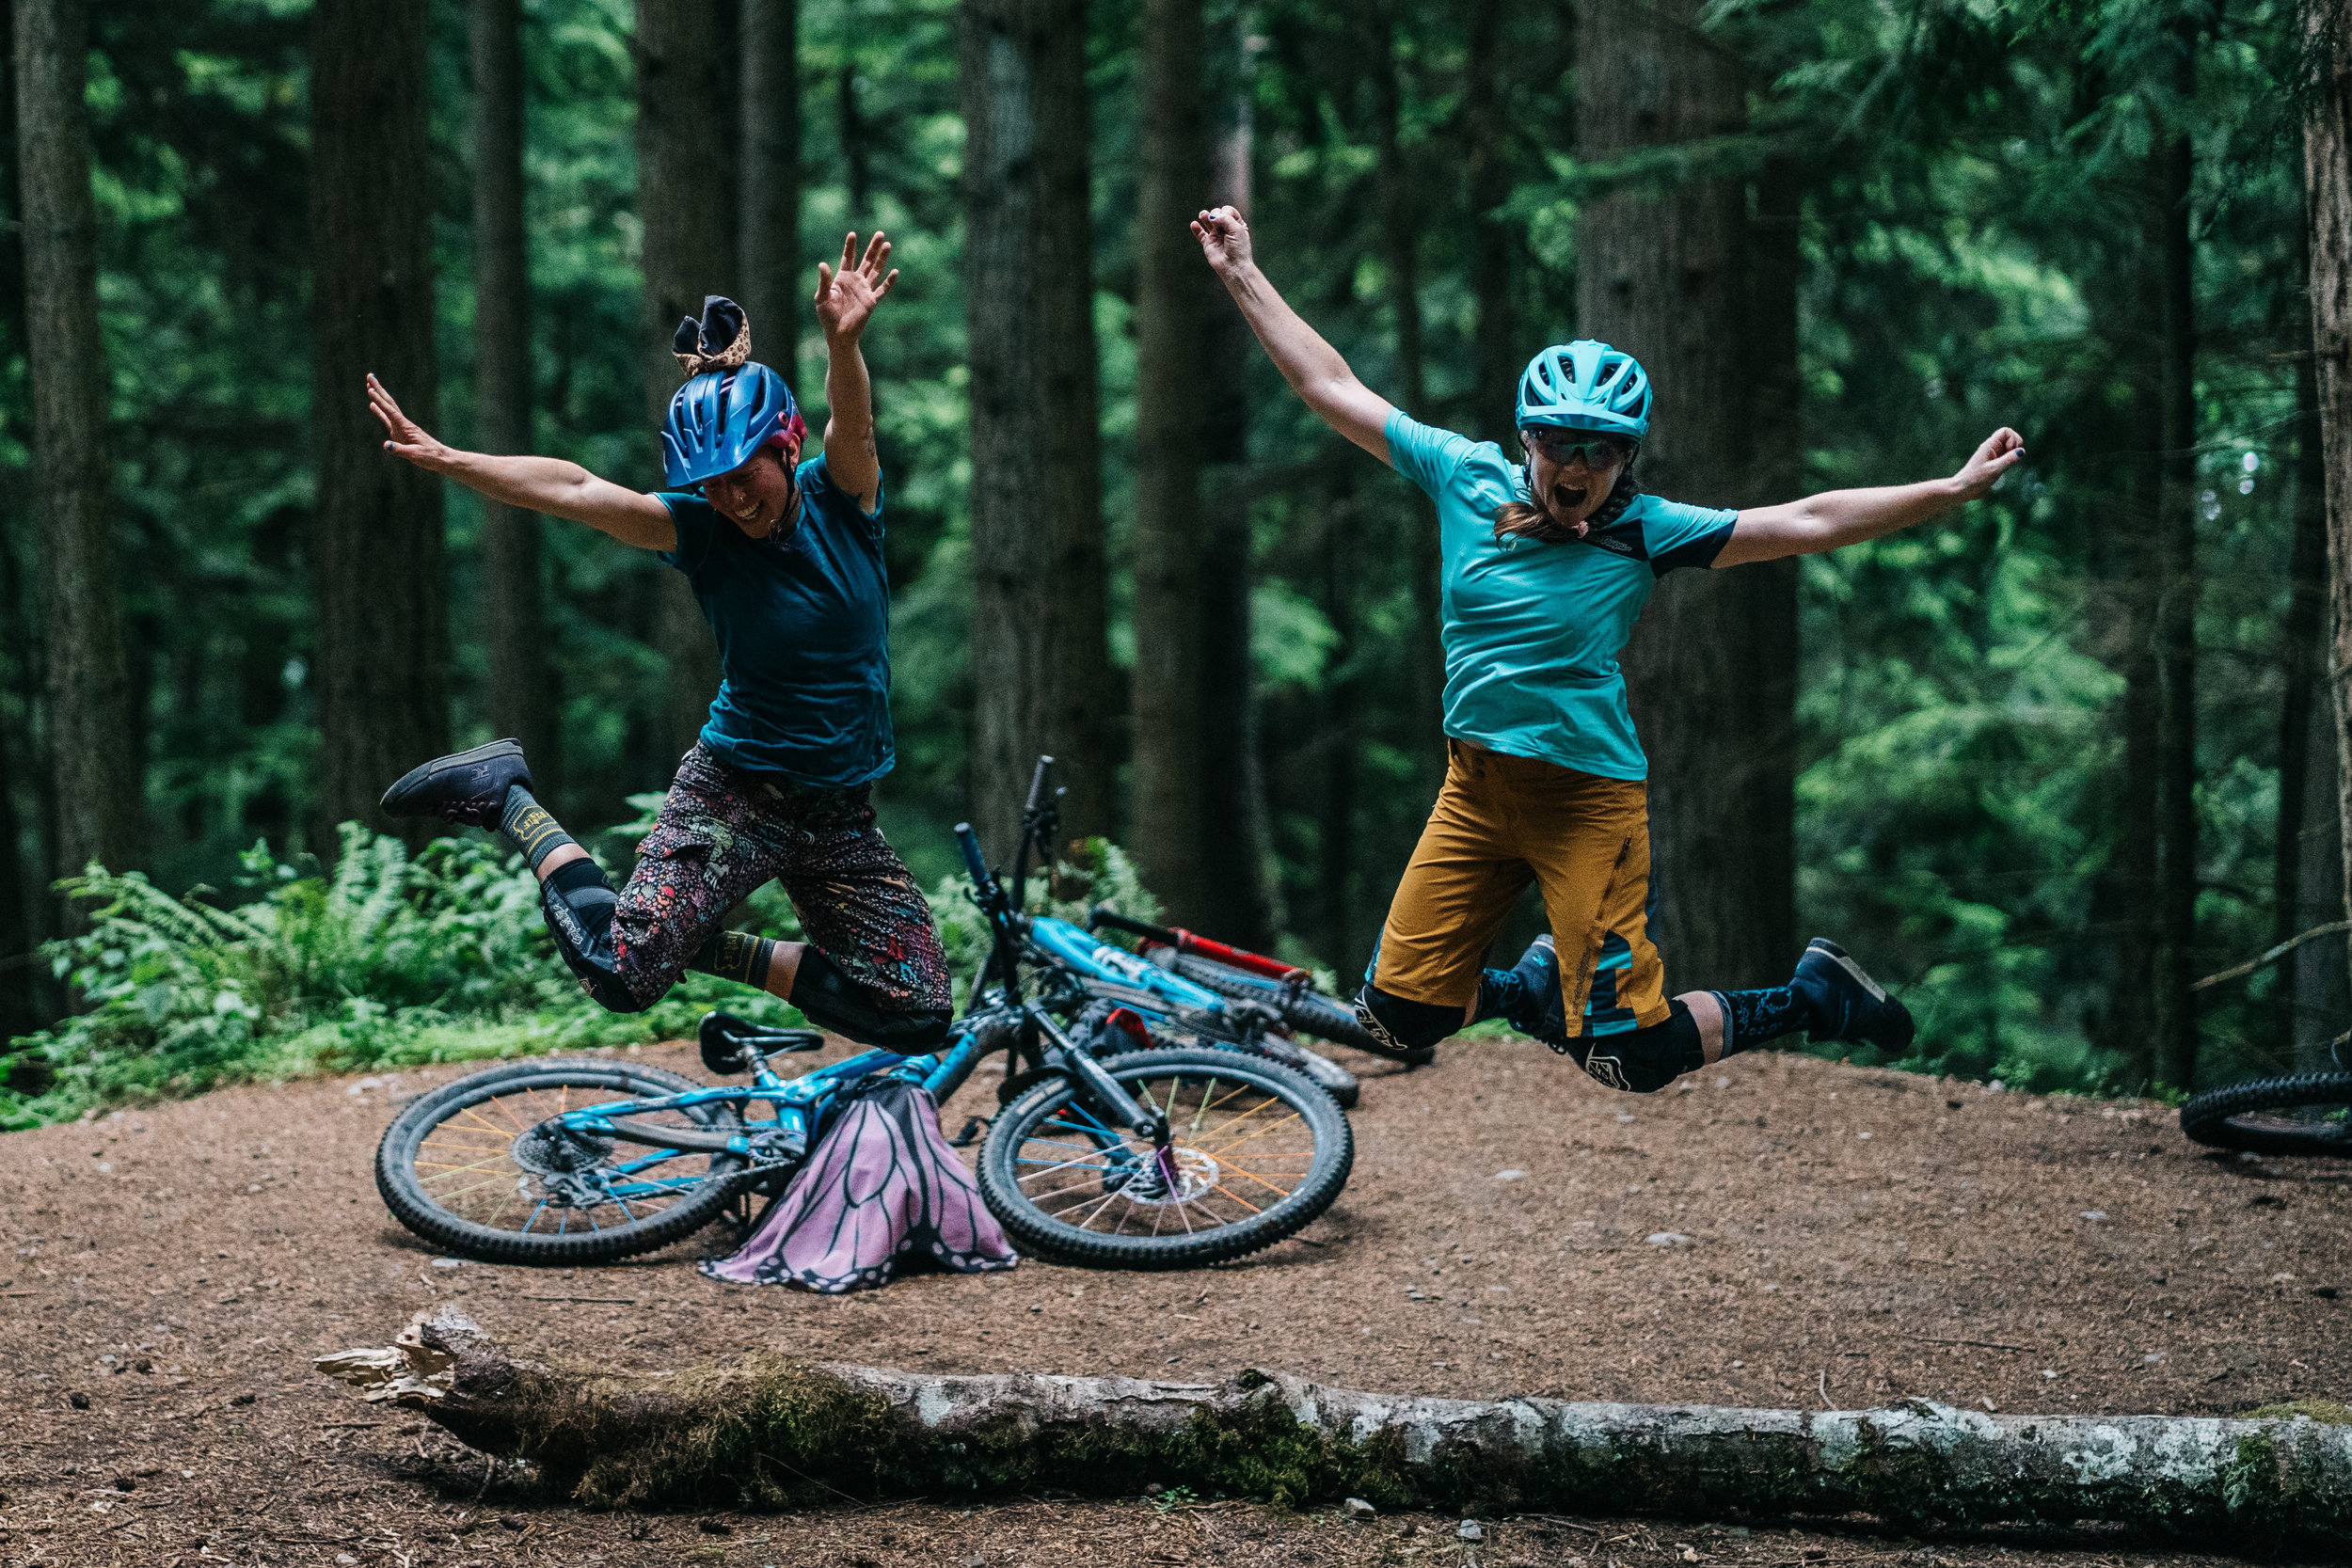 Throw your arms up if you love having fun with friends on bikes!